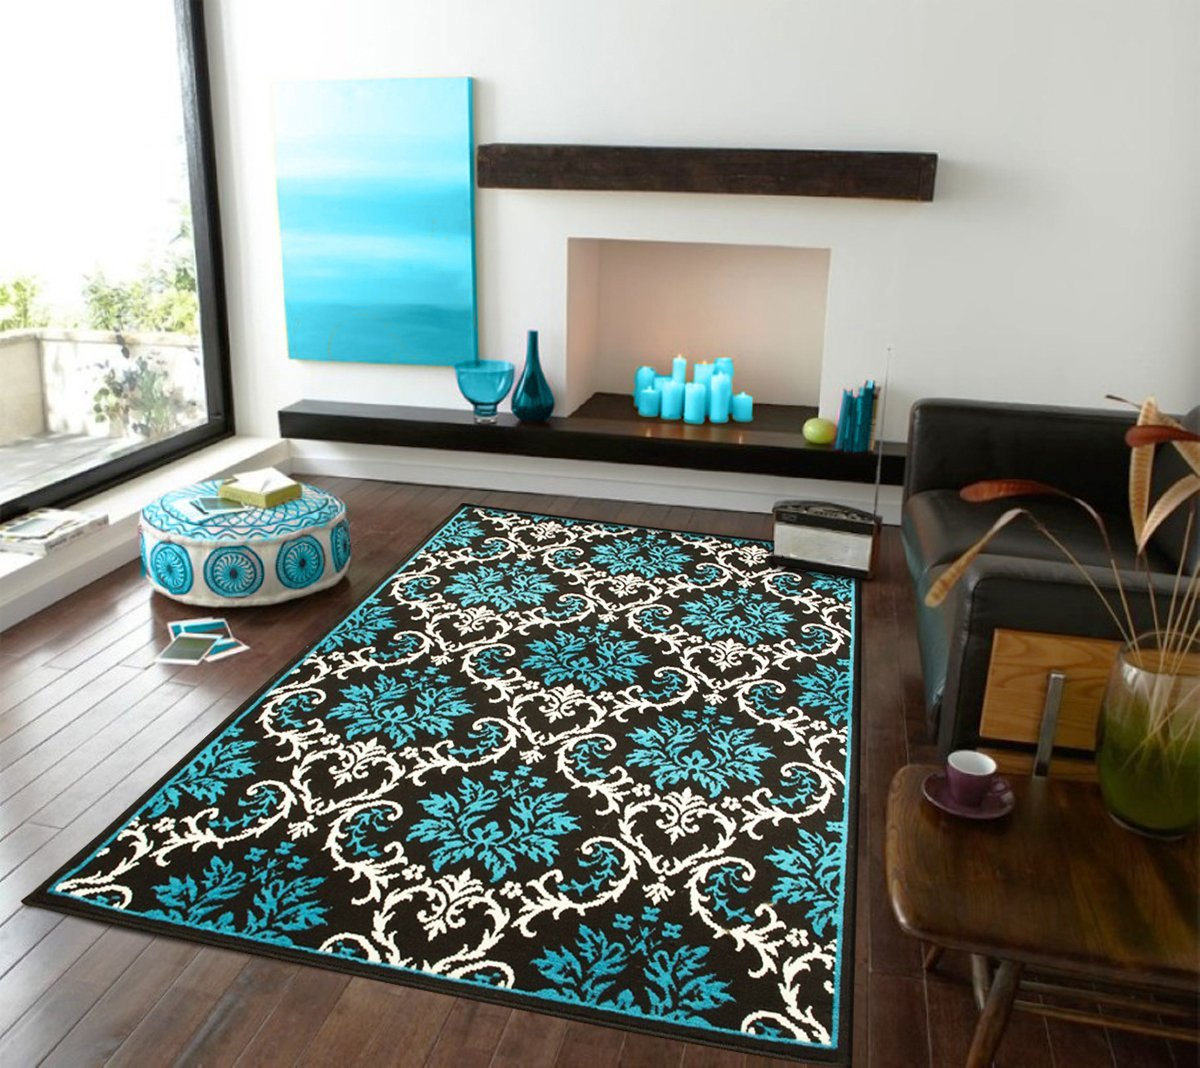 We may earn commission on. Large Contemporary Area Rugs For Living Room Blue & Black ...